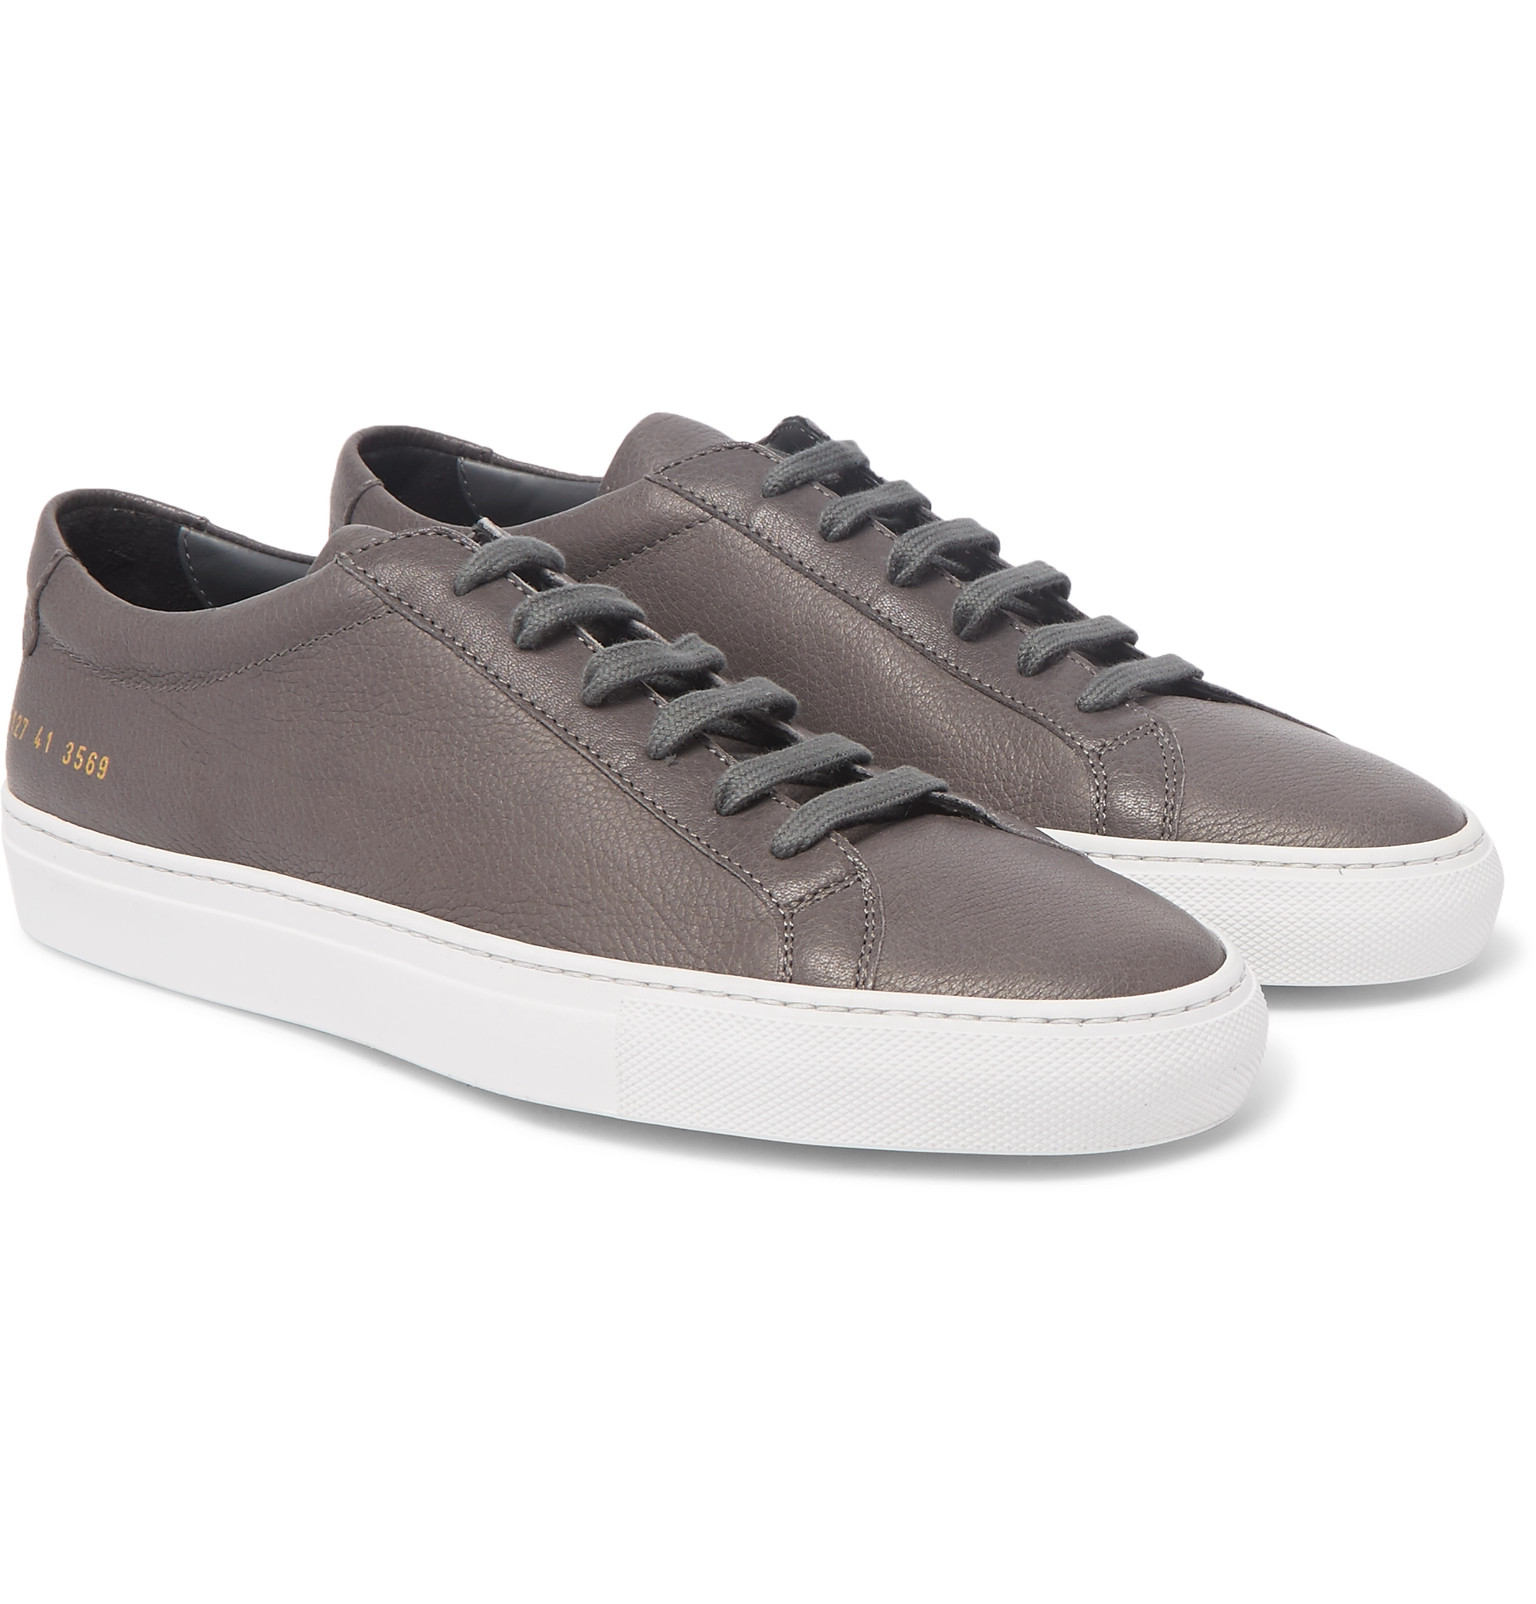 Original Achilles Full-grain Leather Sneakers Common Projects SjS6nf